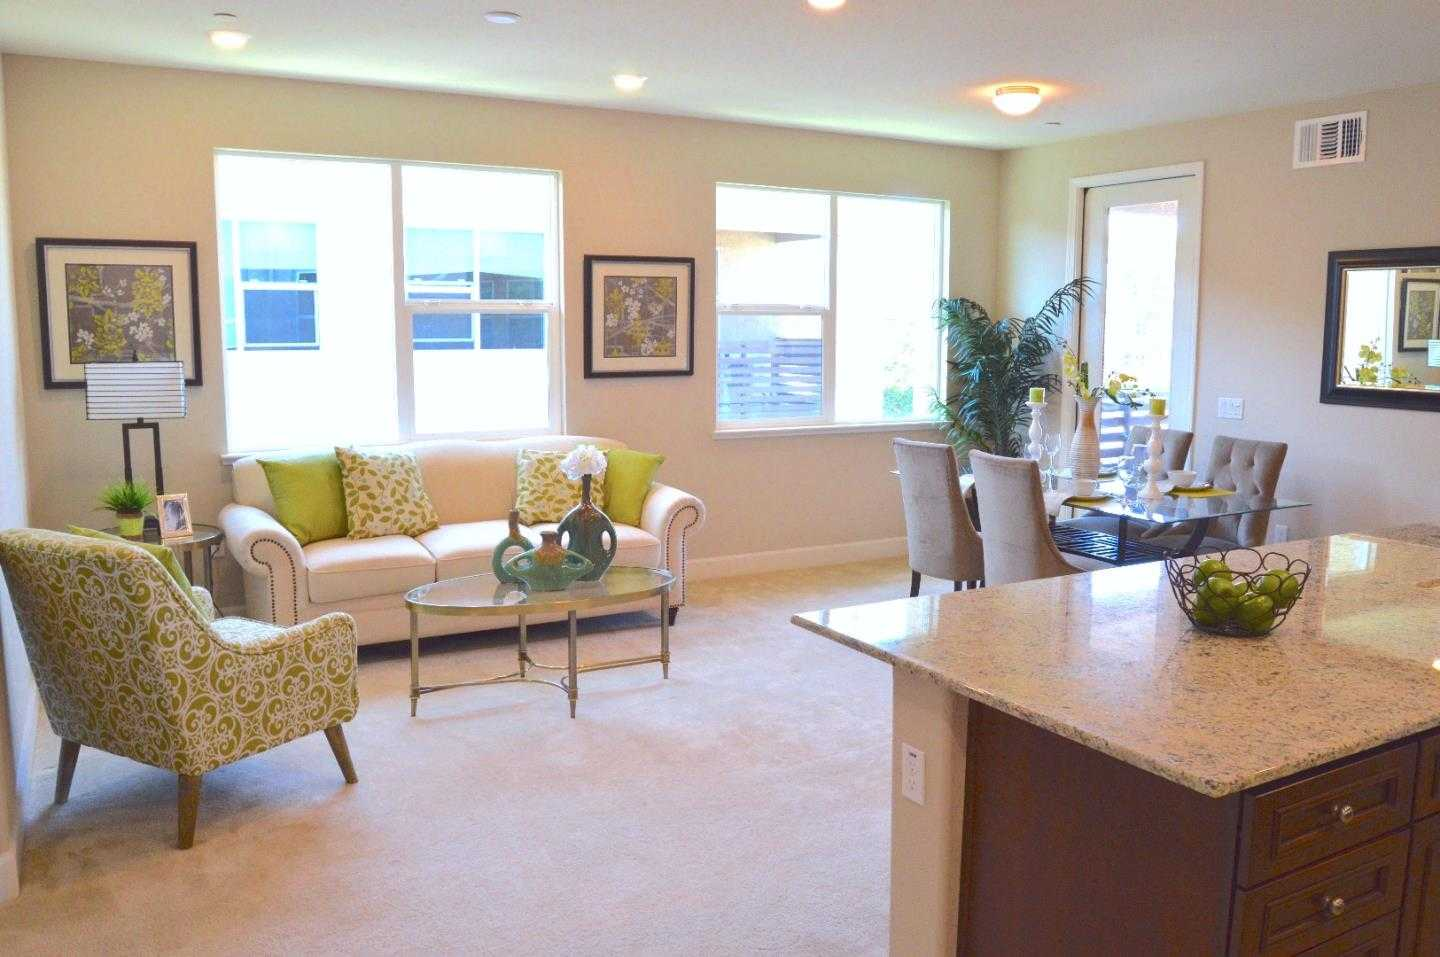 $1,078,000 - 3Br/2Ba -  for Sale in Sunnyvale